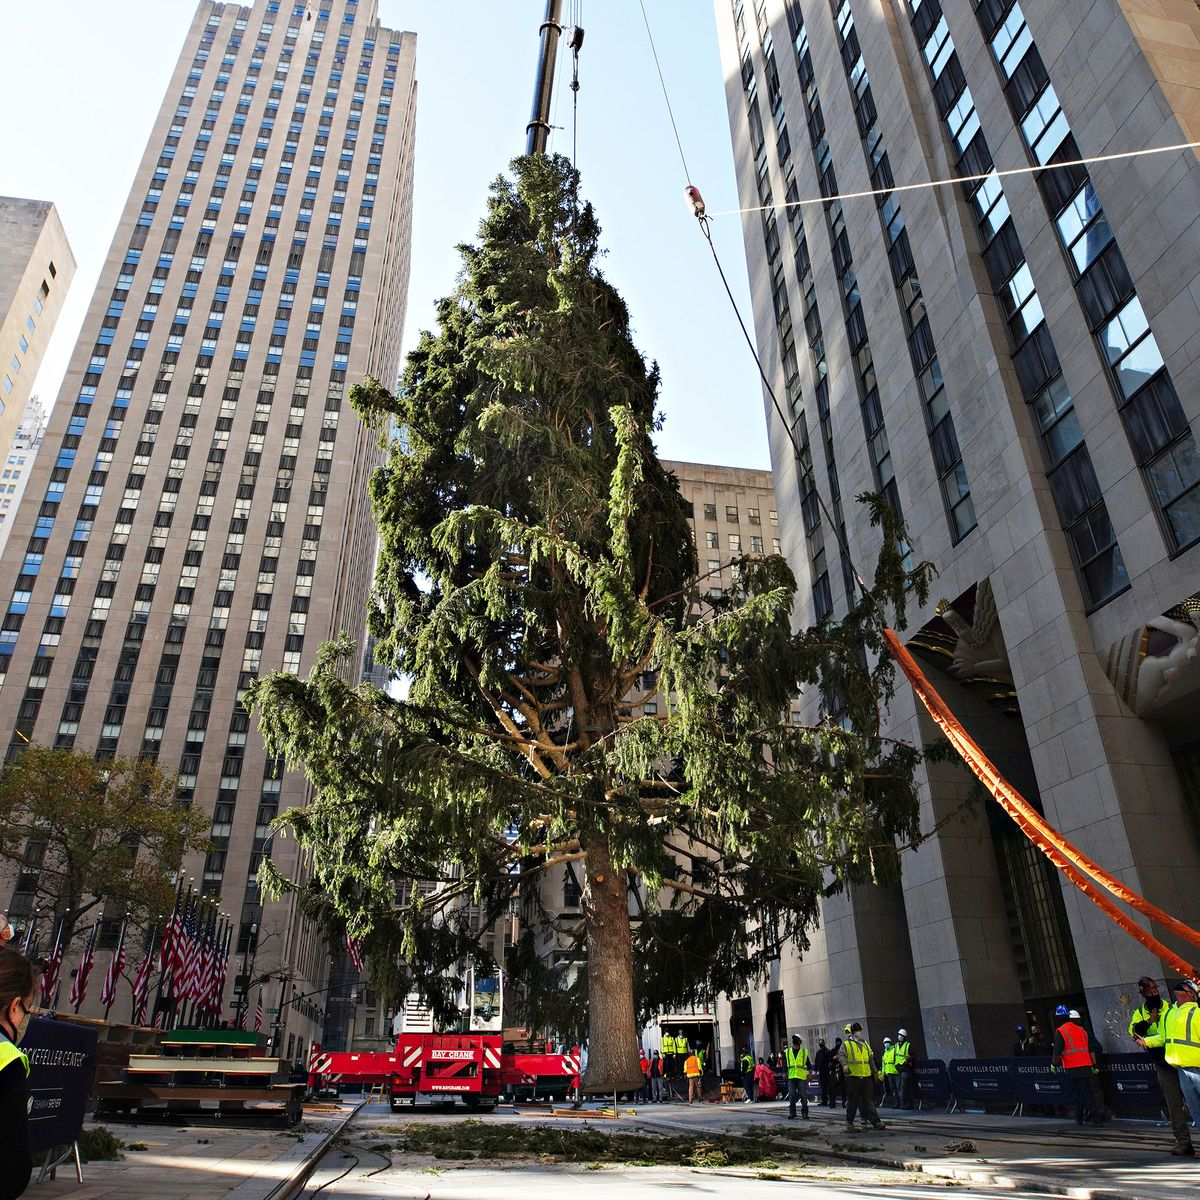 Christmas Trees In Queens, Ny 2021 The Rockefeller Center Christmas Tree Got A Glow Up